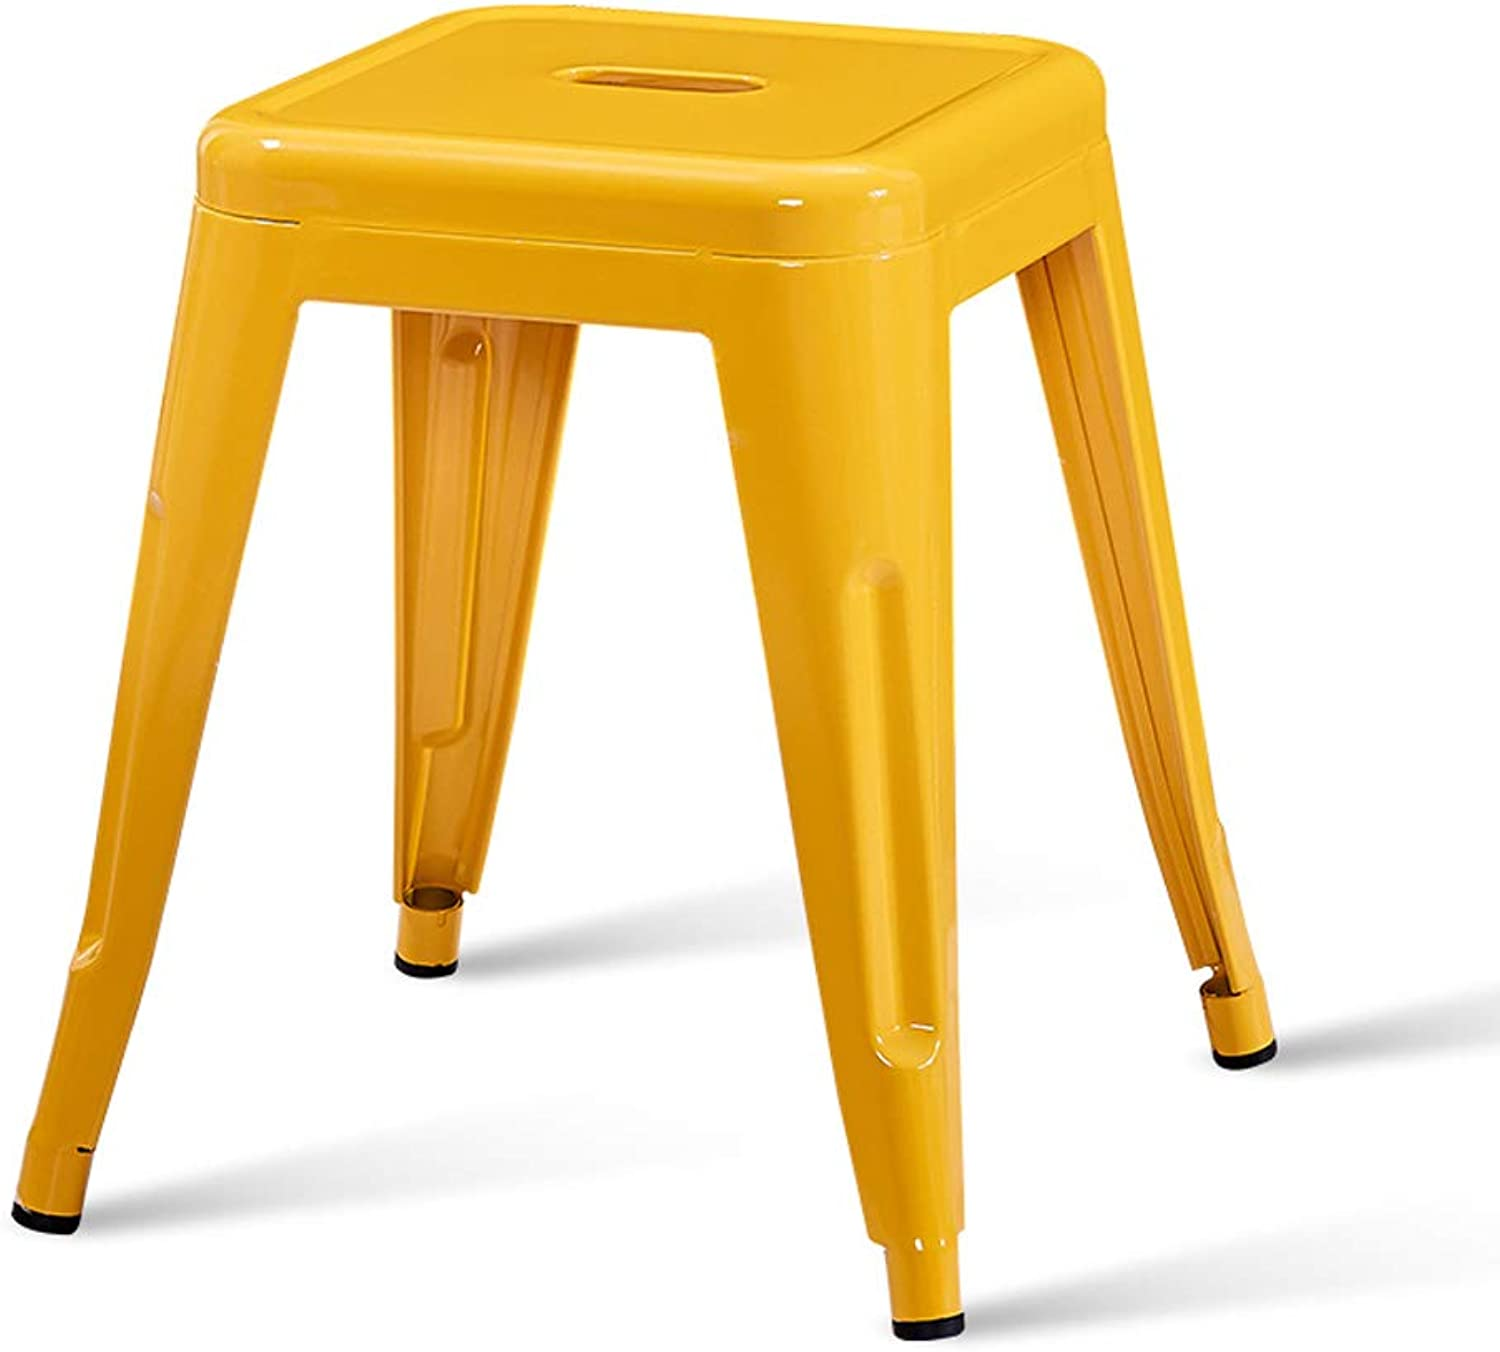 CJH Modern Minimalist Iron Stool Fashion Creative Stool Table Stool Home Living Small Bench Yellow Adult Stool